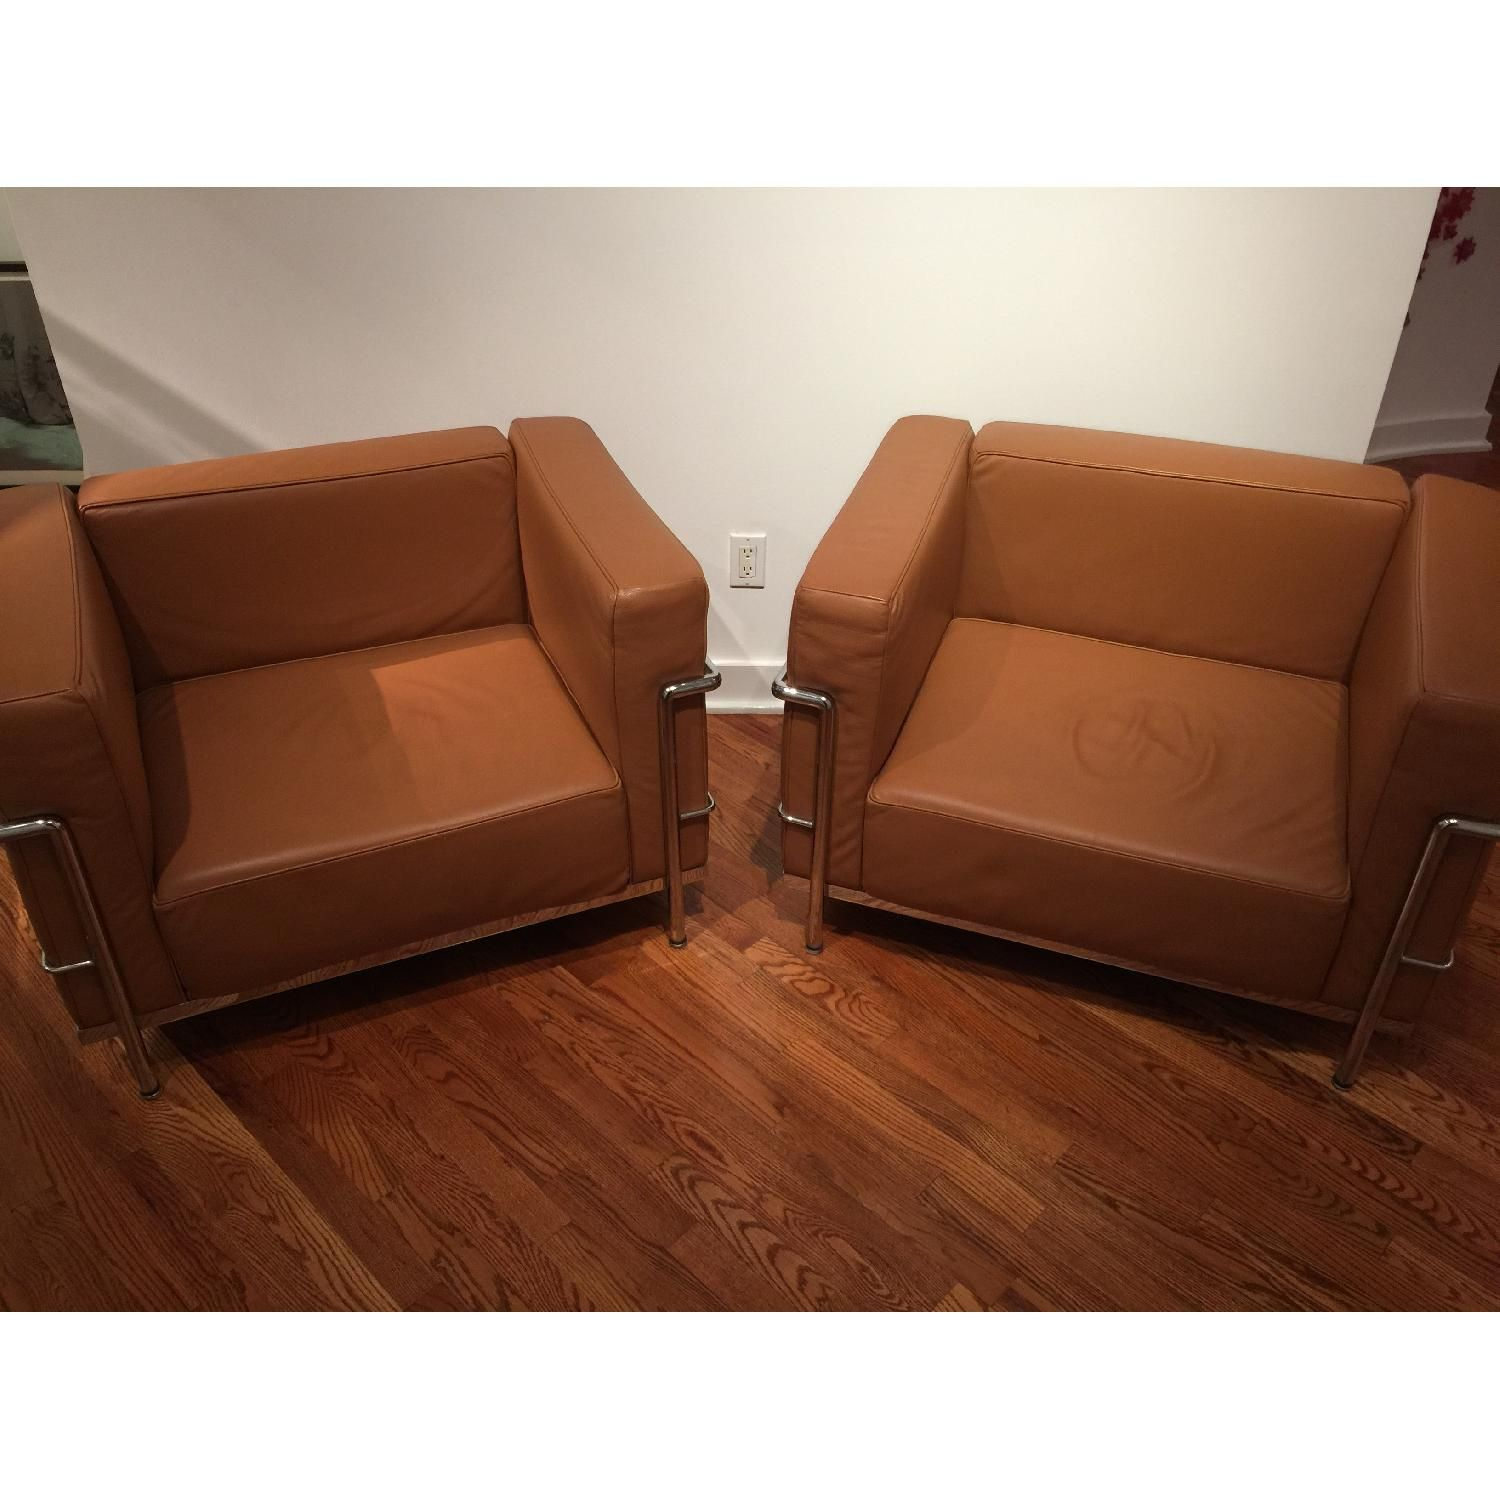 LC3 Grand Modele Armchairs | Armchairs for sale, Armchair ...